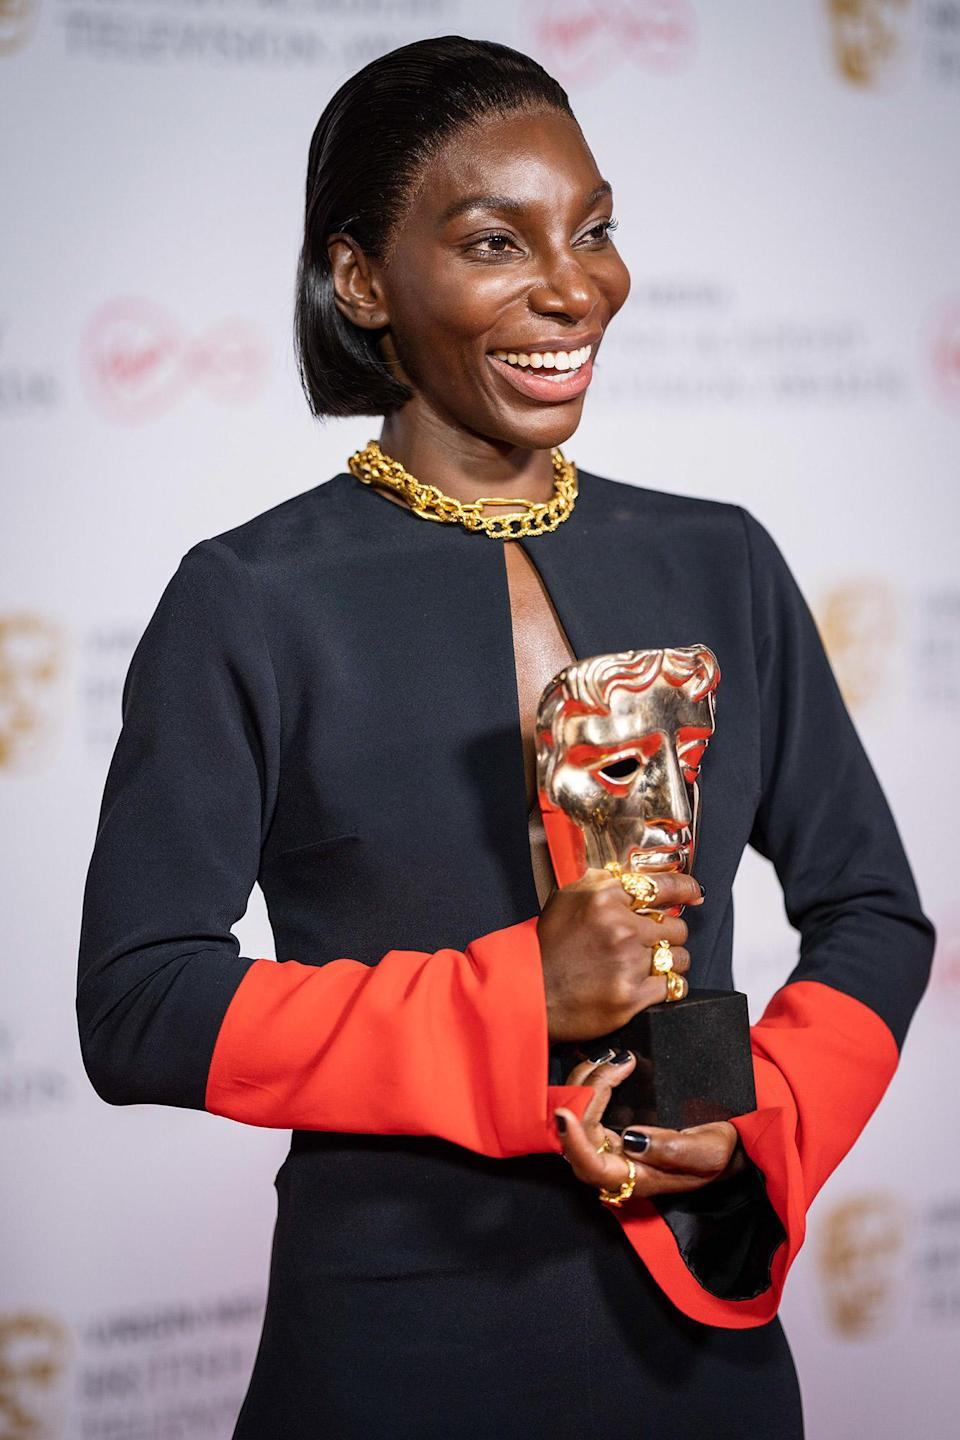 <p>Michaela Coel takes home multiple awards for her series<i> I May Destroy You</i>, including best actress and best mini-series, at the BAFTA TV awards. </p>